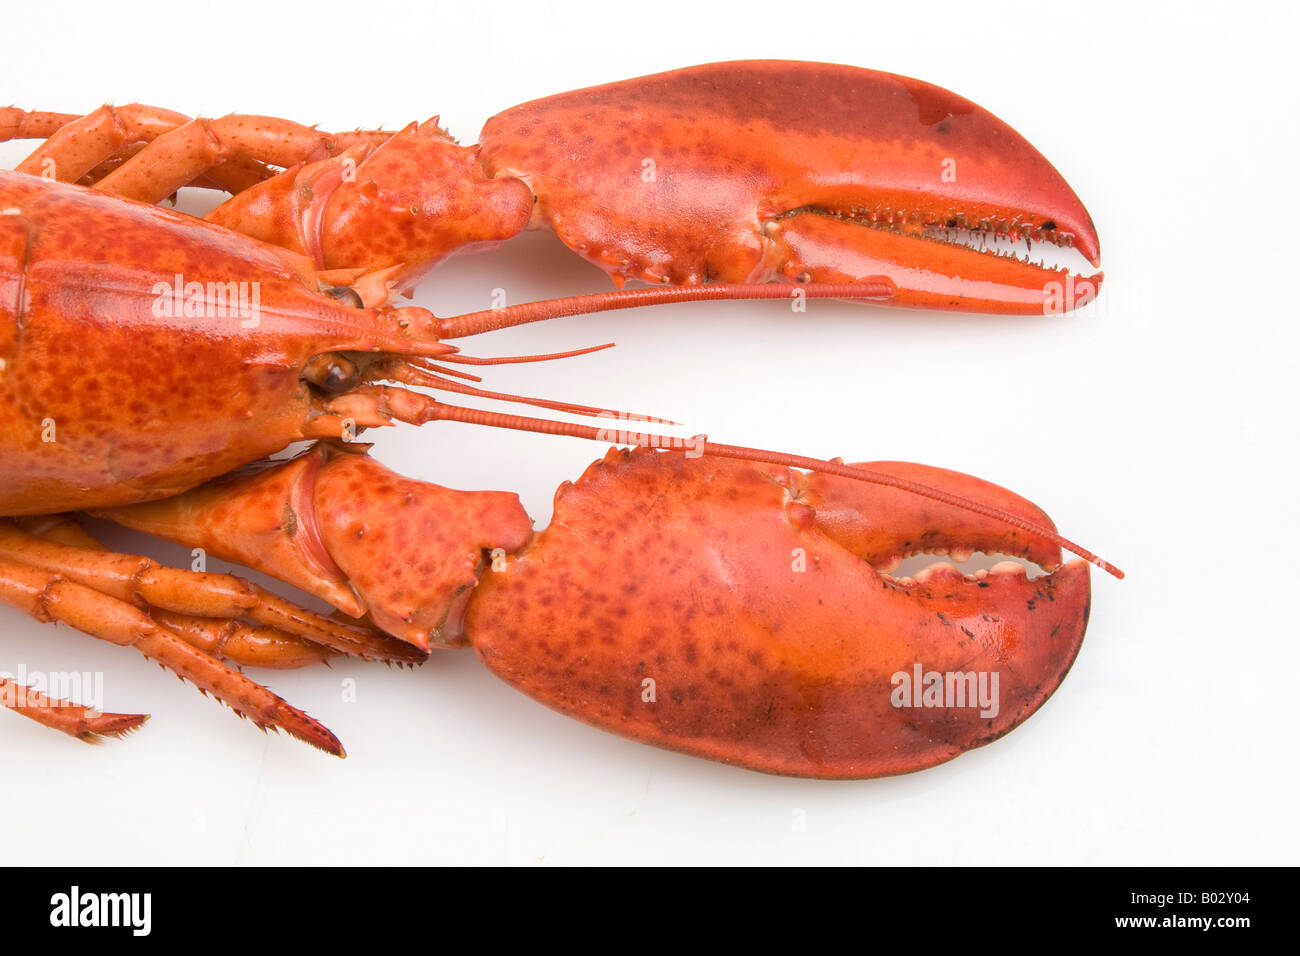 Cooked red lobster claws on white background. Horizontal. - Stock Image